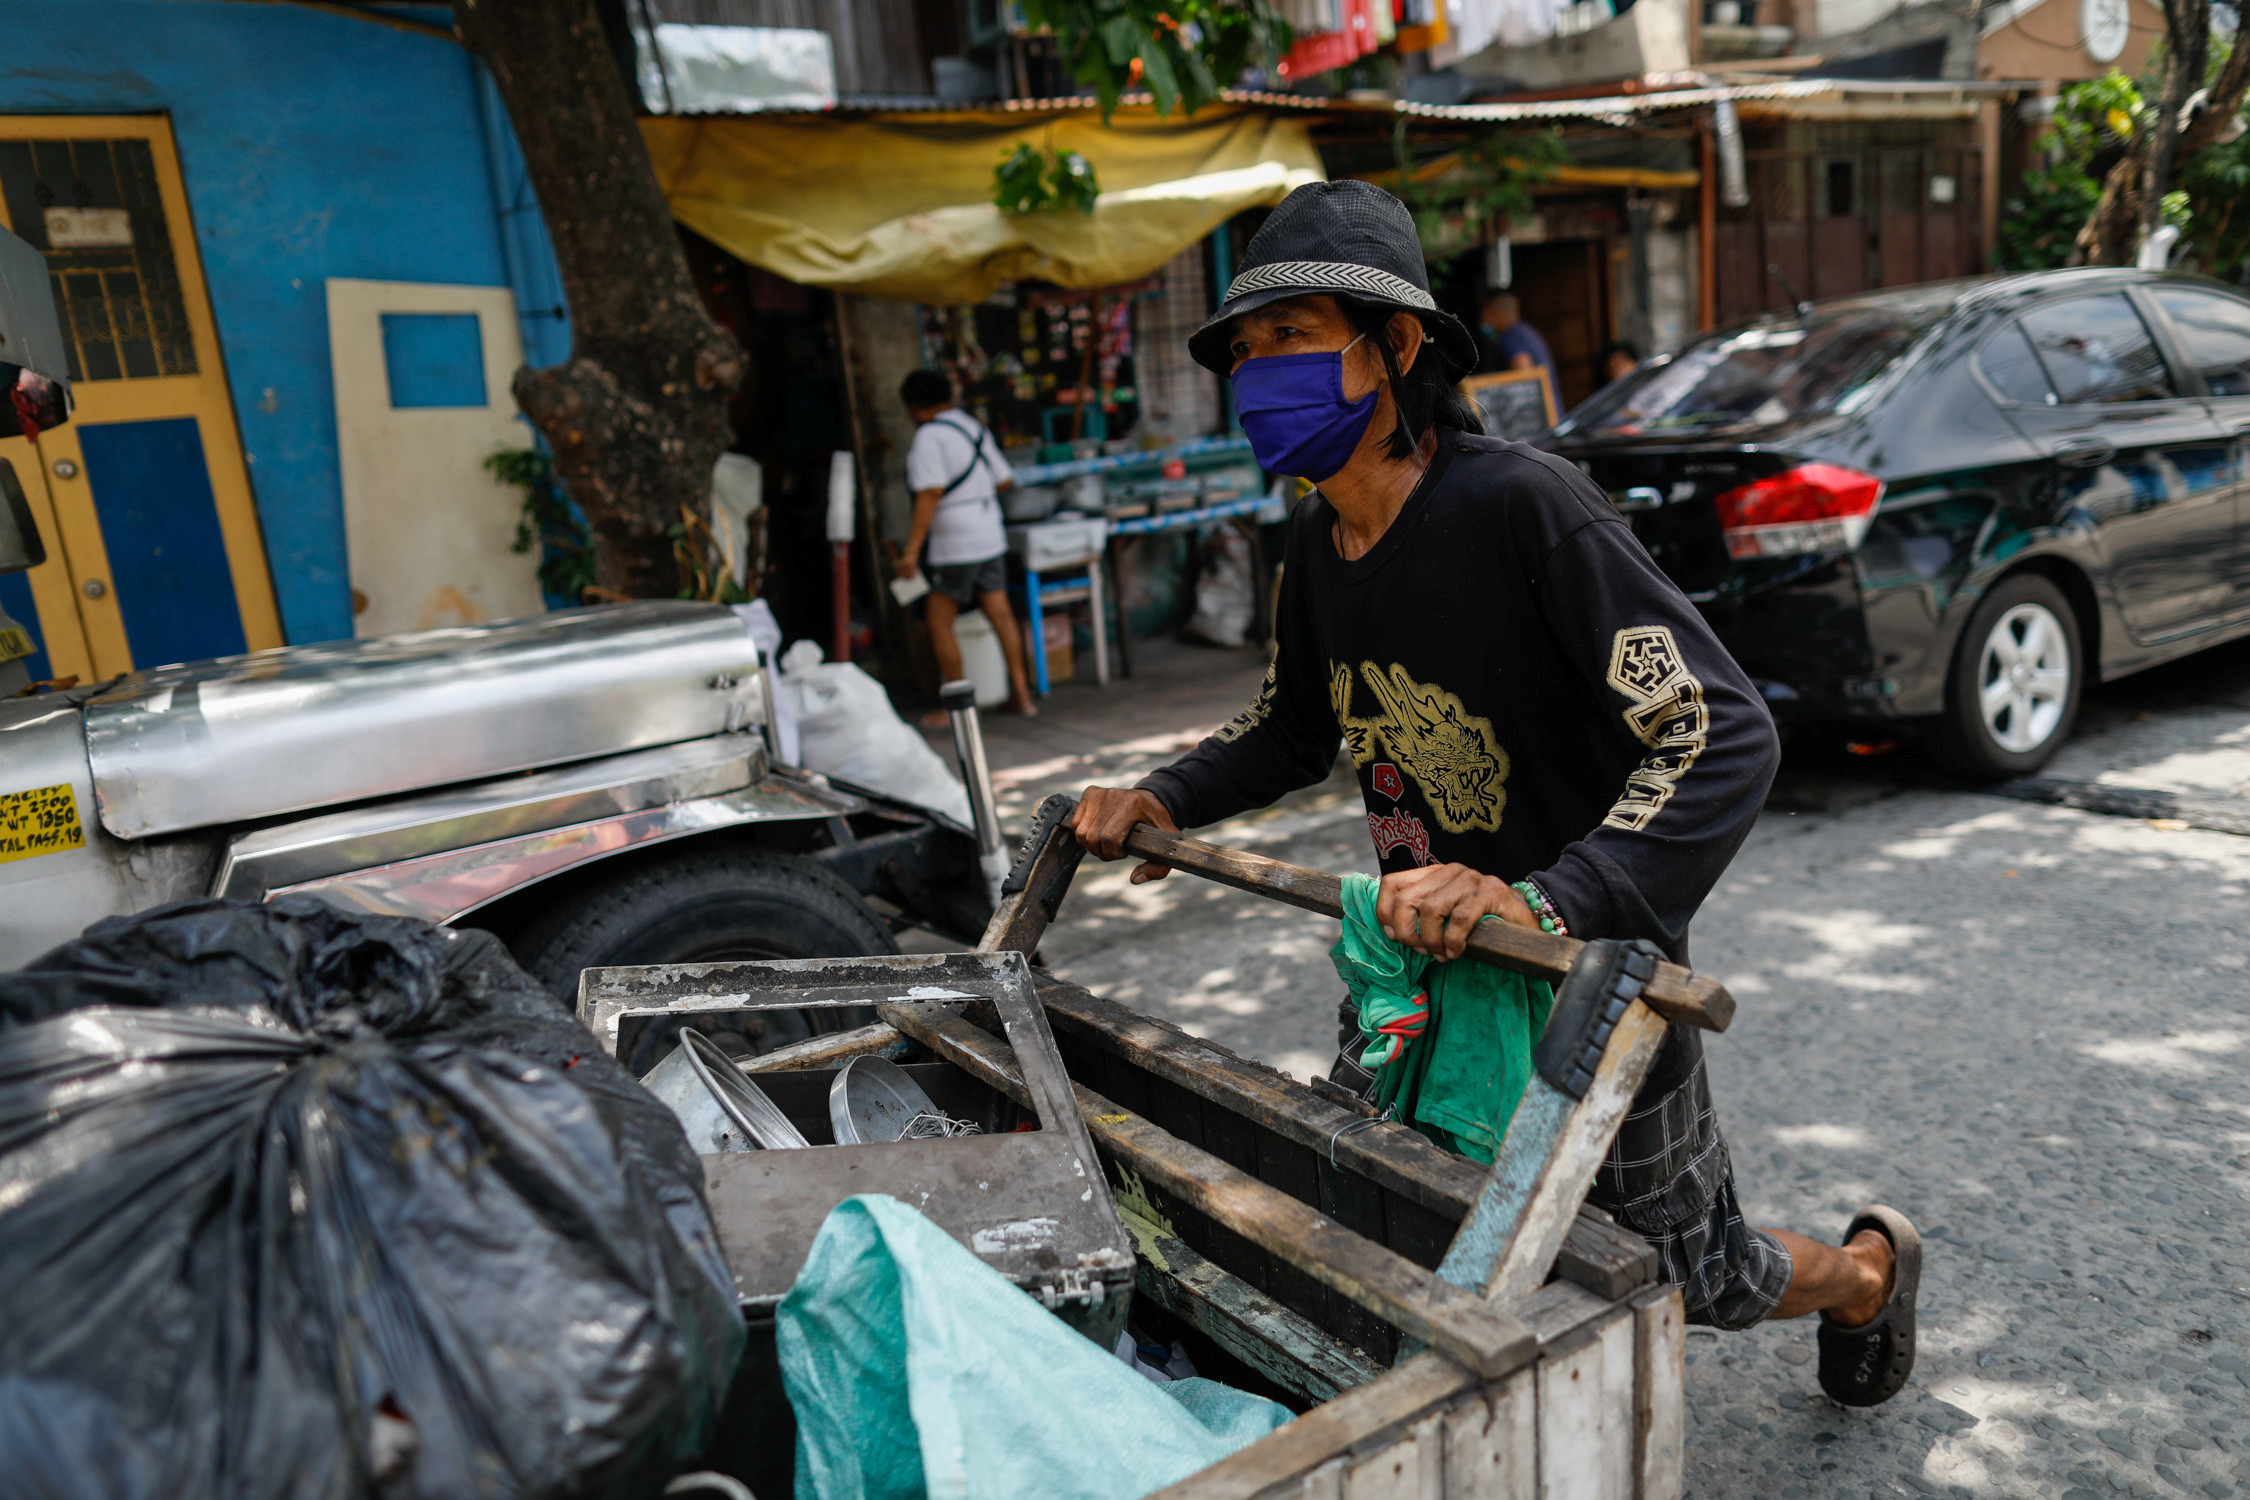 Waste picker Virgilio Estueta, 60, walks with his cart filled with trash amid the coronavirus disease (COVID-19) outbreak, in Quezon City, Metro Manila, Philippines, July 7, 2020. Picture taken July 7, 2020